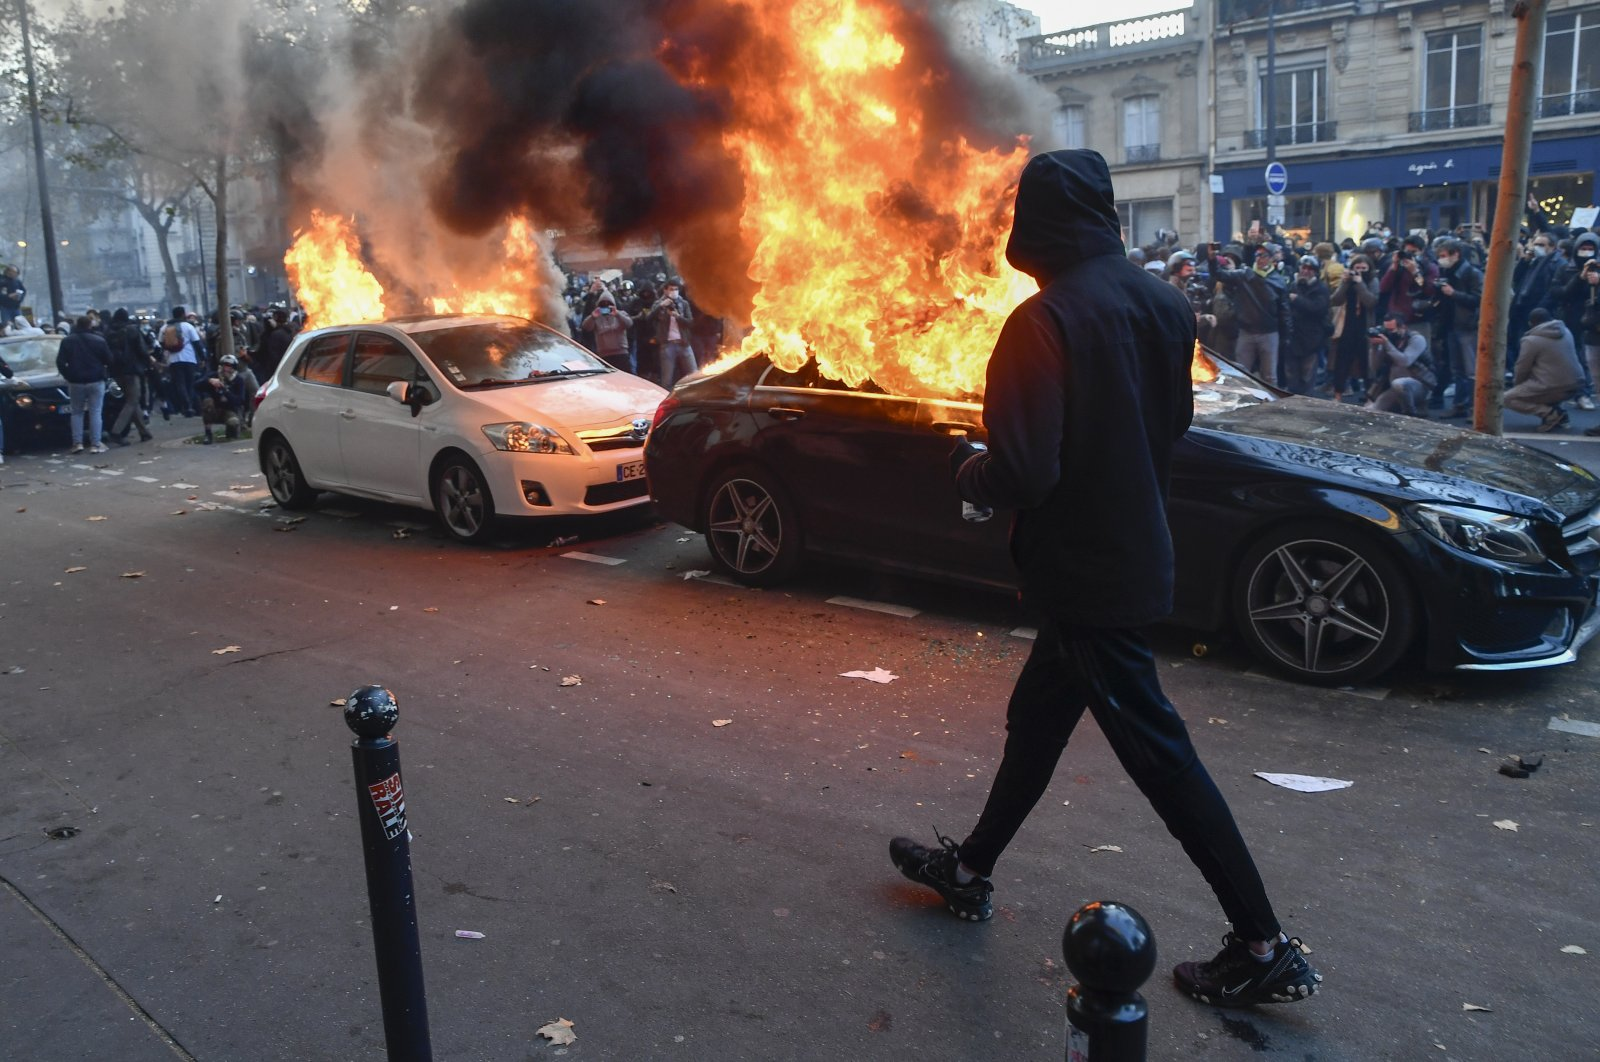 A protester takes a walk past burning cars in Paris on Nov. 29, 2020. (AA Photo)